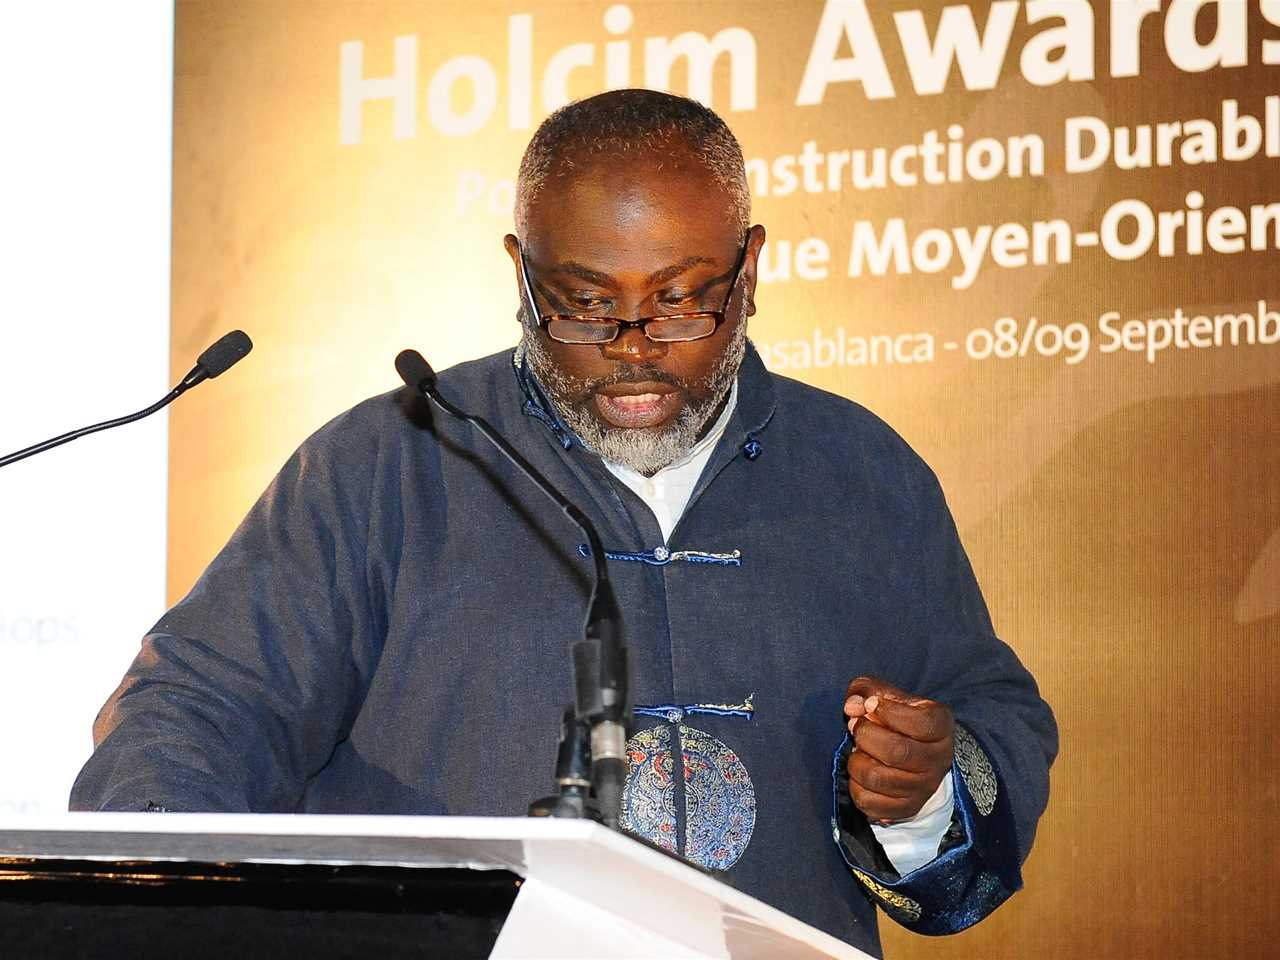 Joe Addo, Principal of Constructs LLC, Ghana/USA and member of the Holcim Awards jury for region …